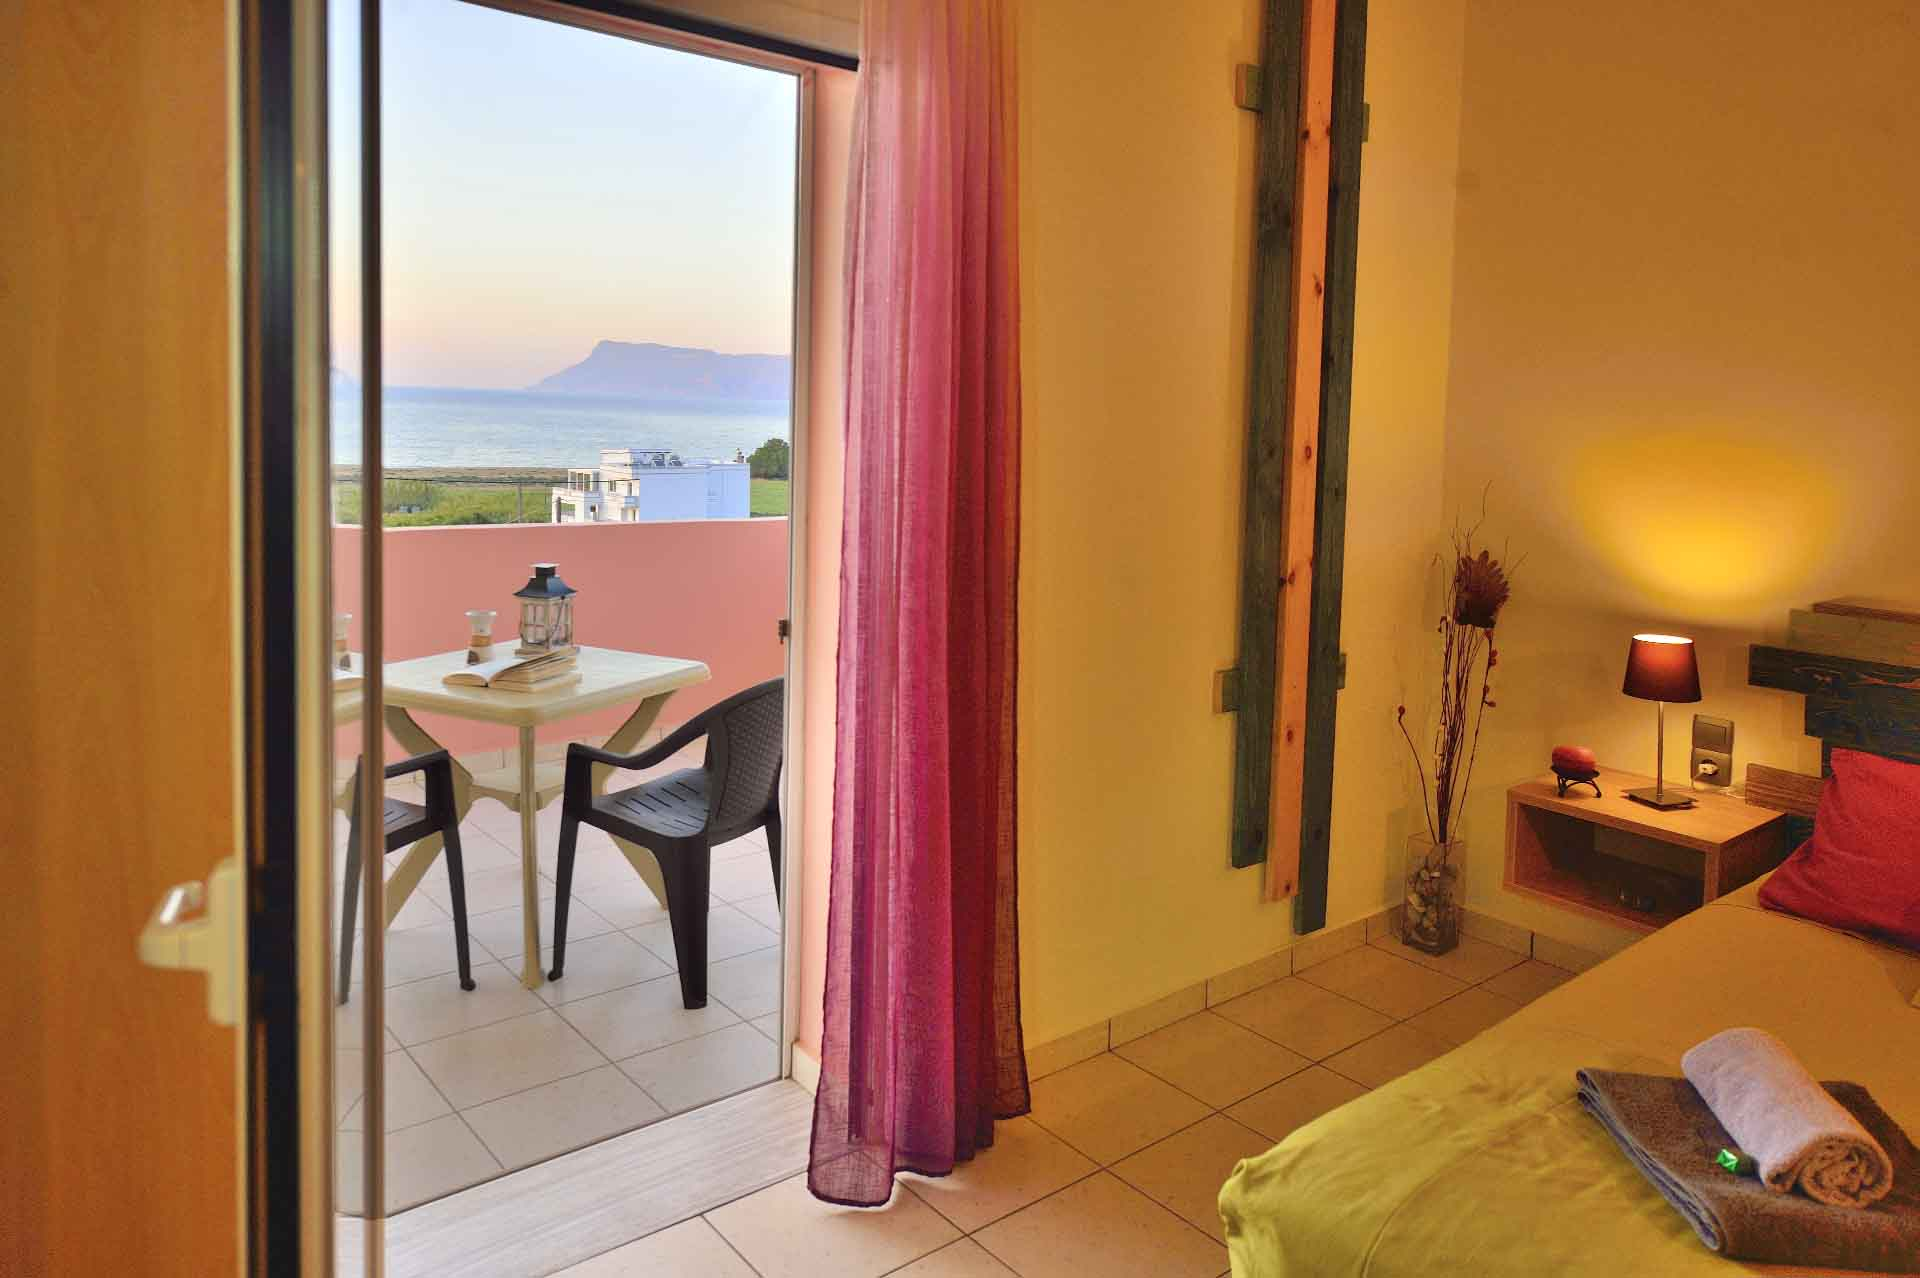 Indoors | Accommodation - Callista Apartments in Kissamos